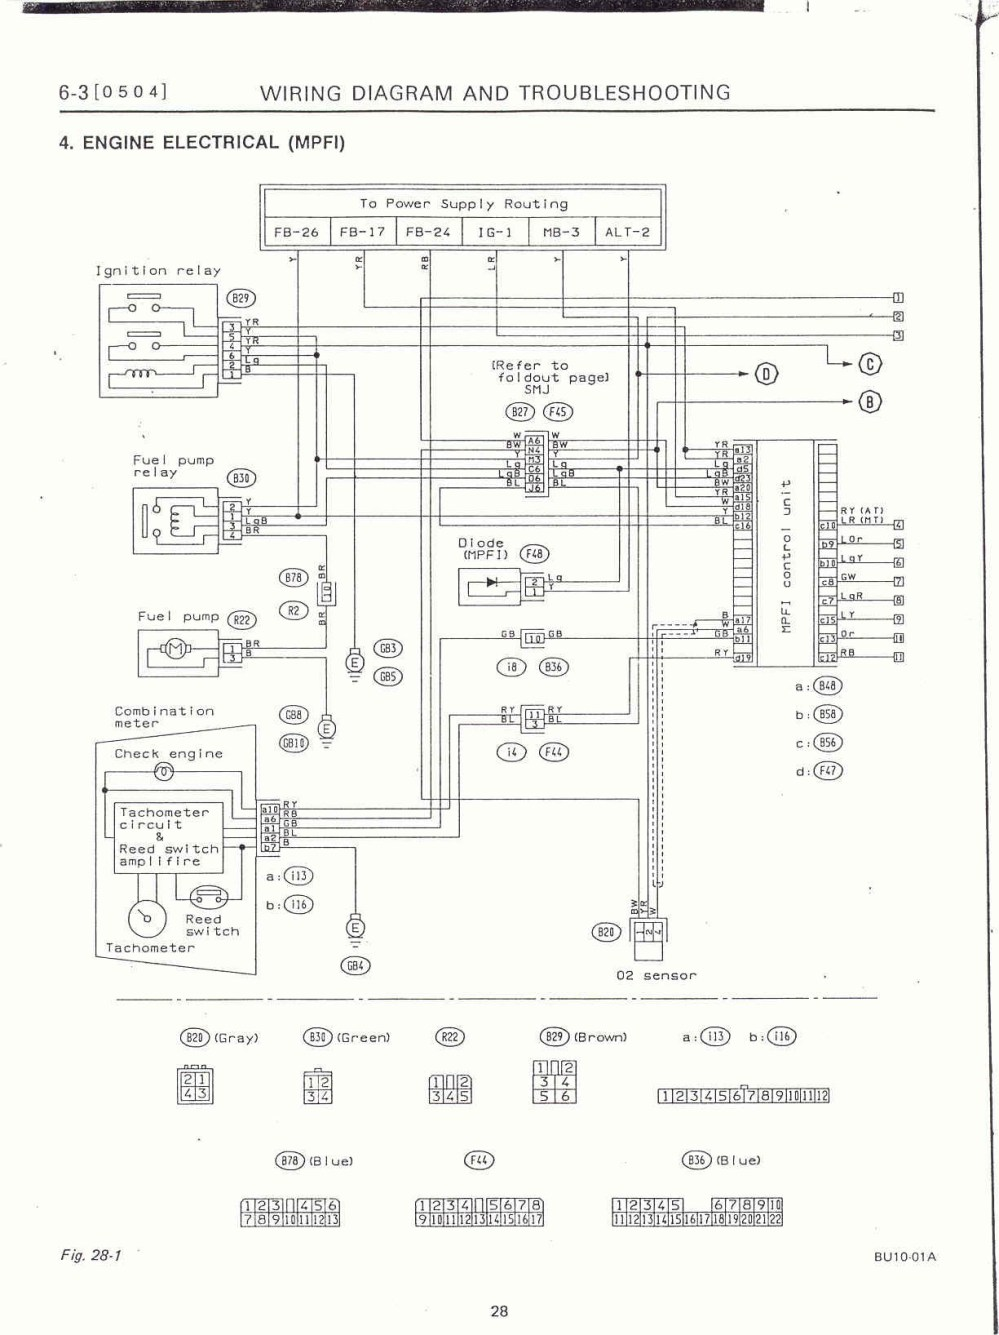 2000 Subaru Impreza Wiring Diagram - Wiring Schematics on